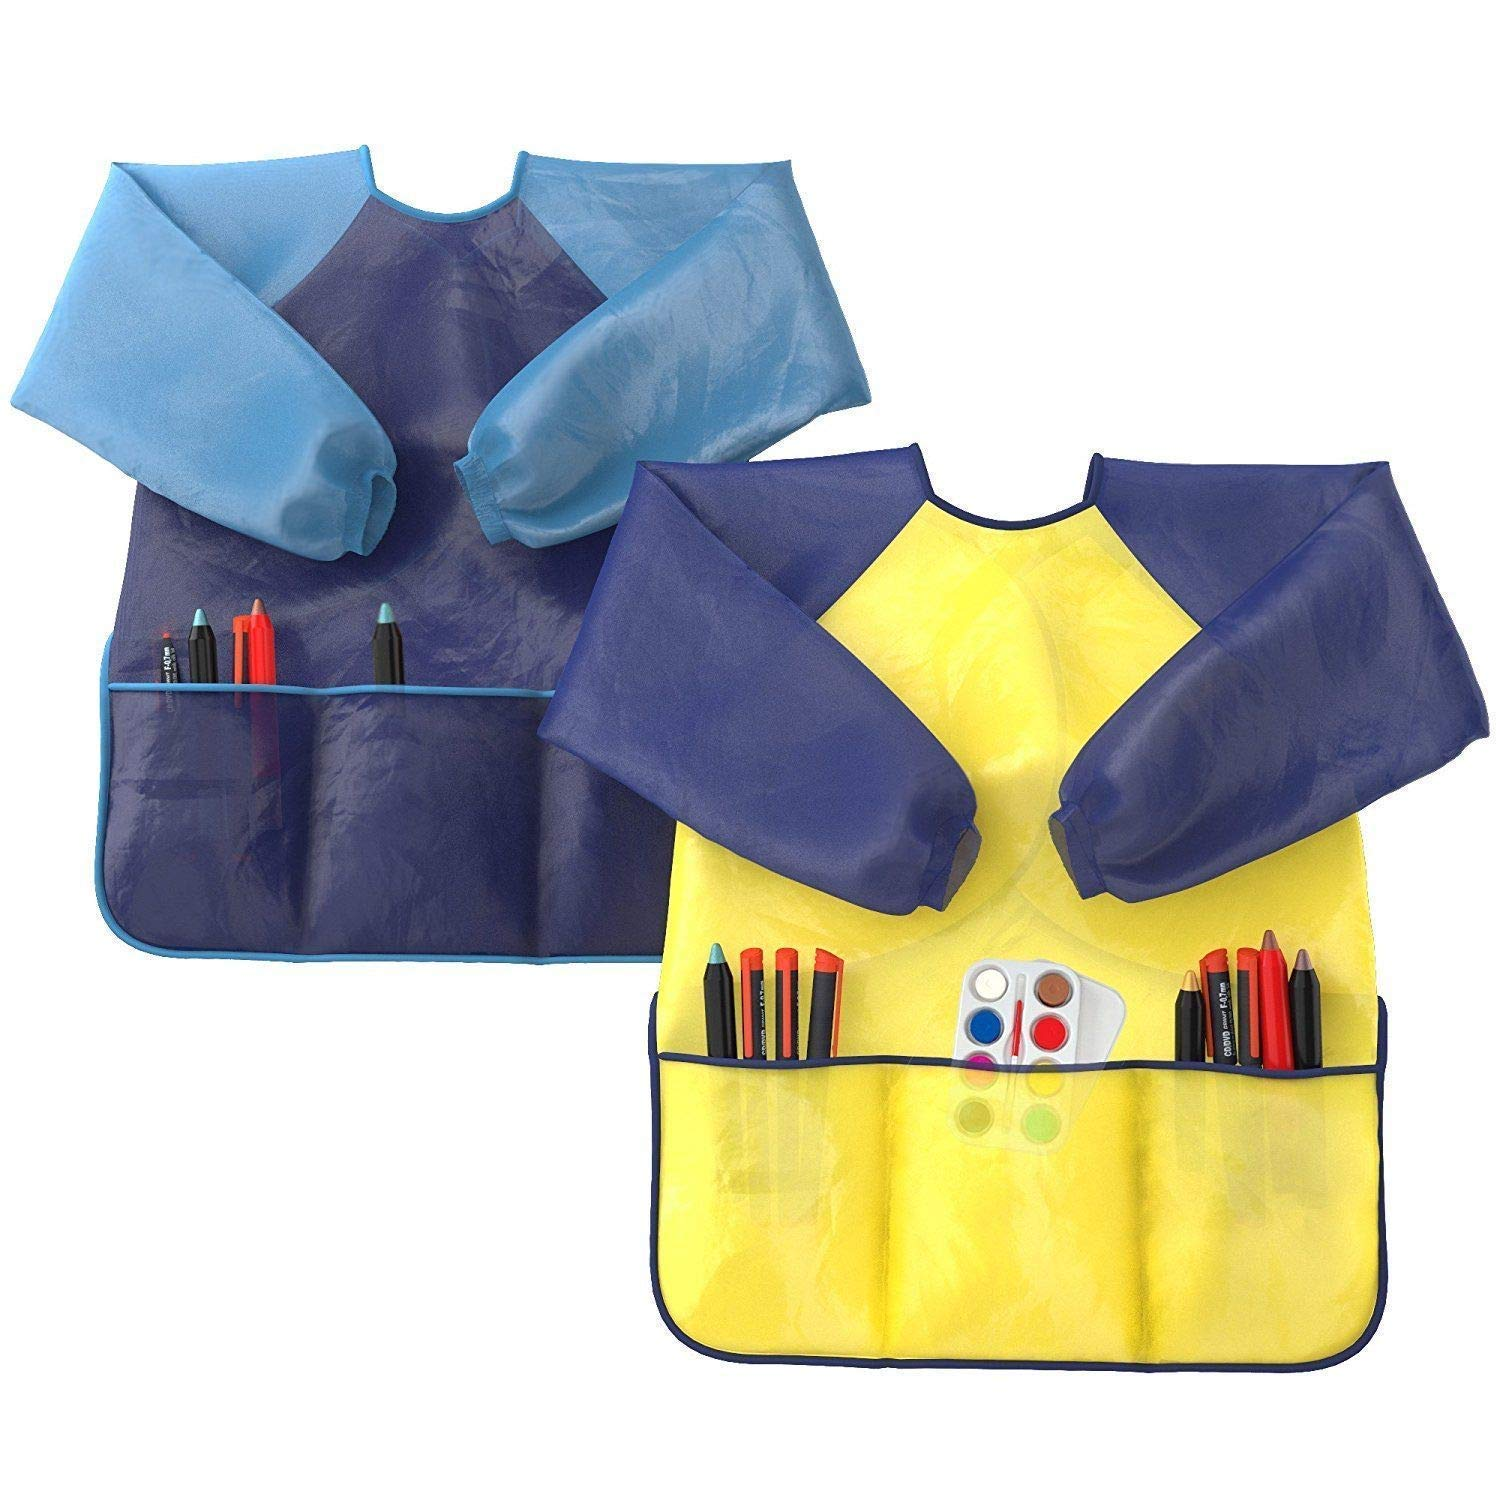 Kids Art Smocks Pack of 2 - Children Artist Painting Aprons Waterproof and Long Sleeve with 3 Roomy Pockets for Boys and Girls Age 2-6 Years Old Wabbio